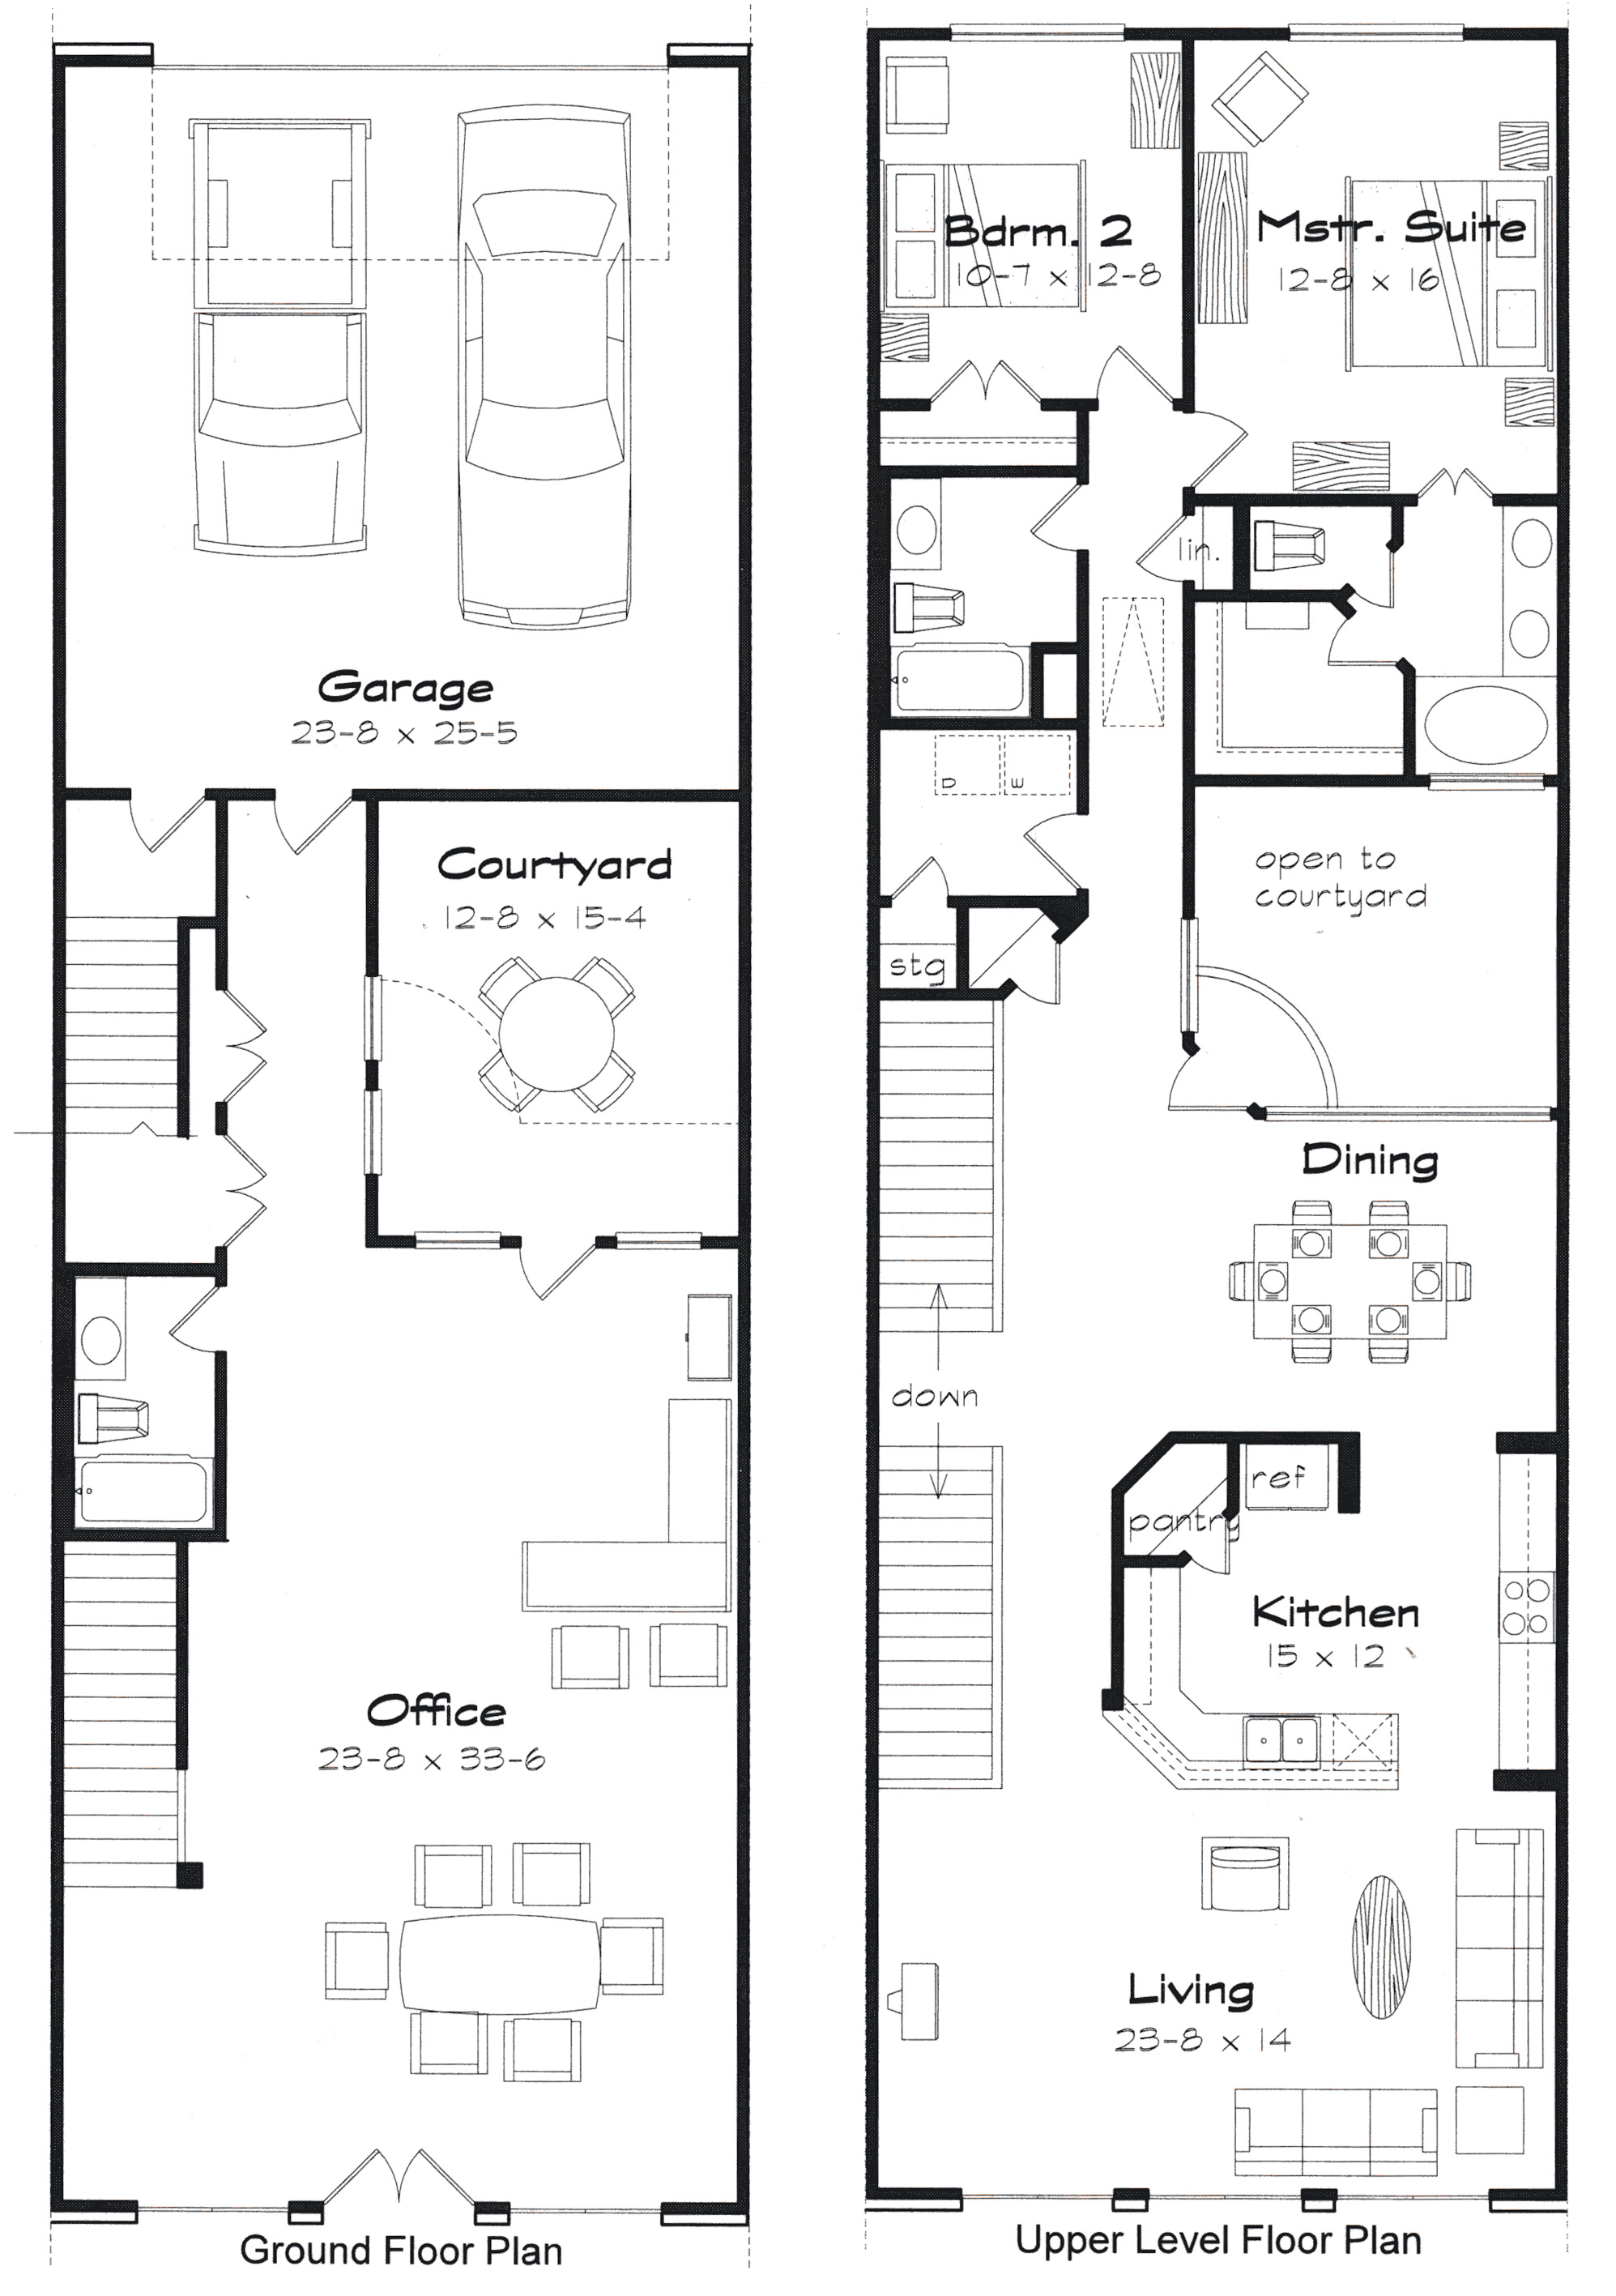 Multi family senior housing texas best house plans by for House blueprints